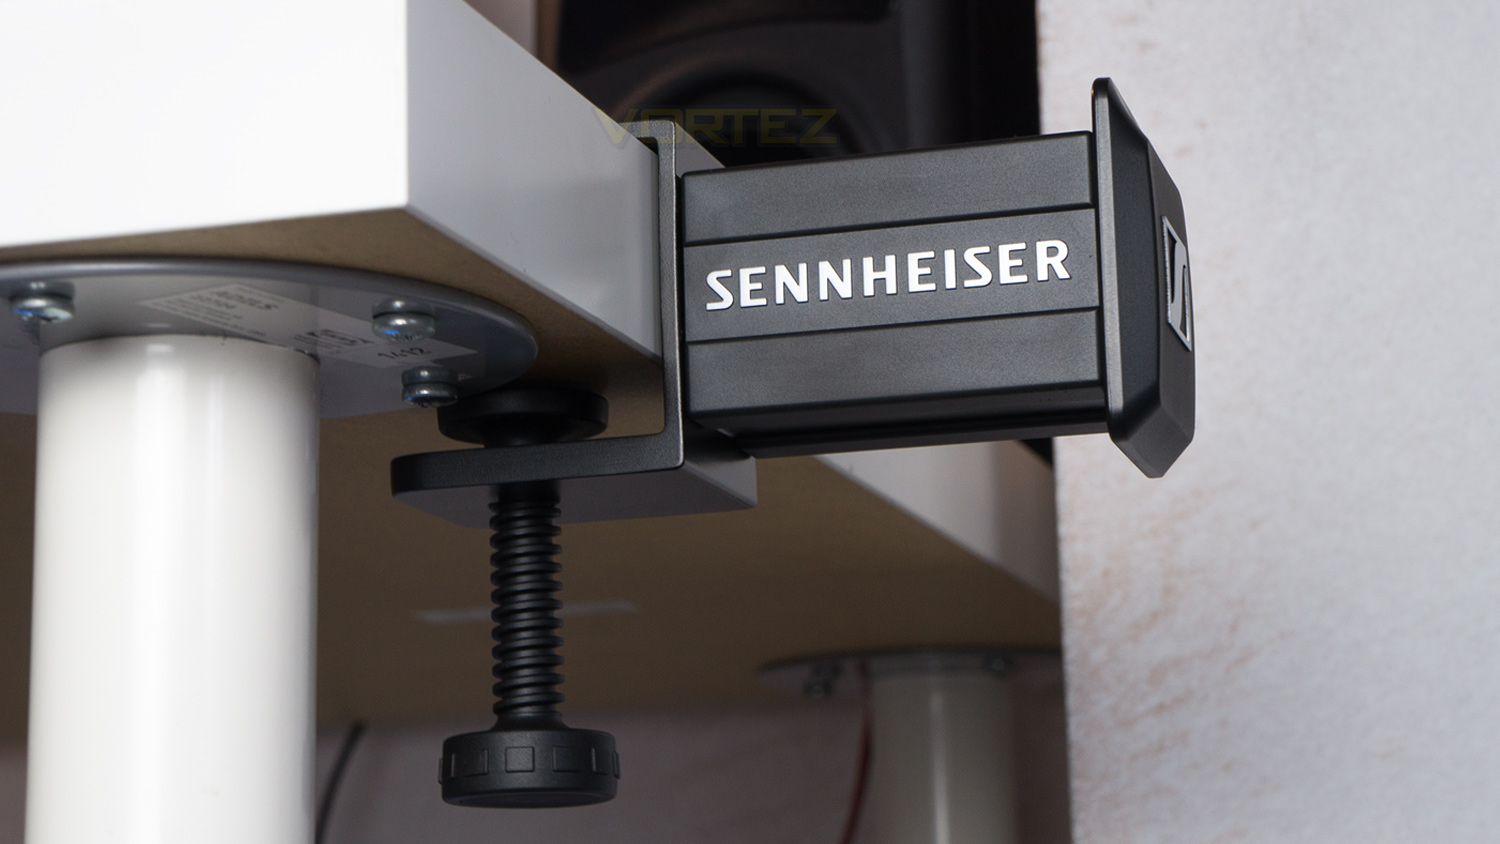 sennheiser_gsa_50_&_gsa_17_review_gsa_50_mechanism.jpg